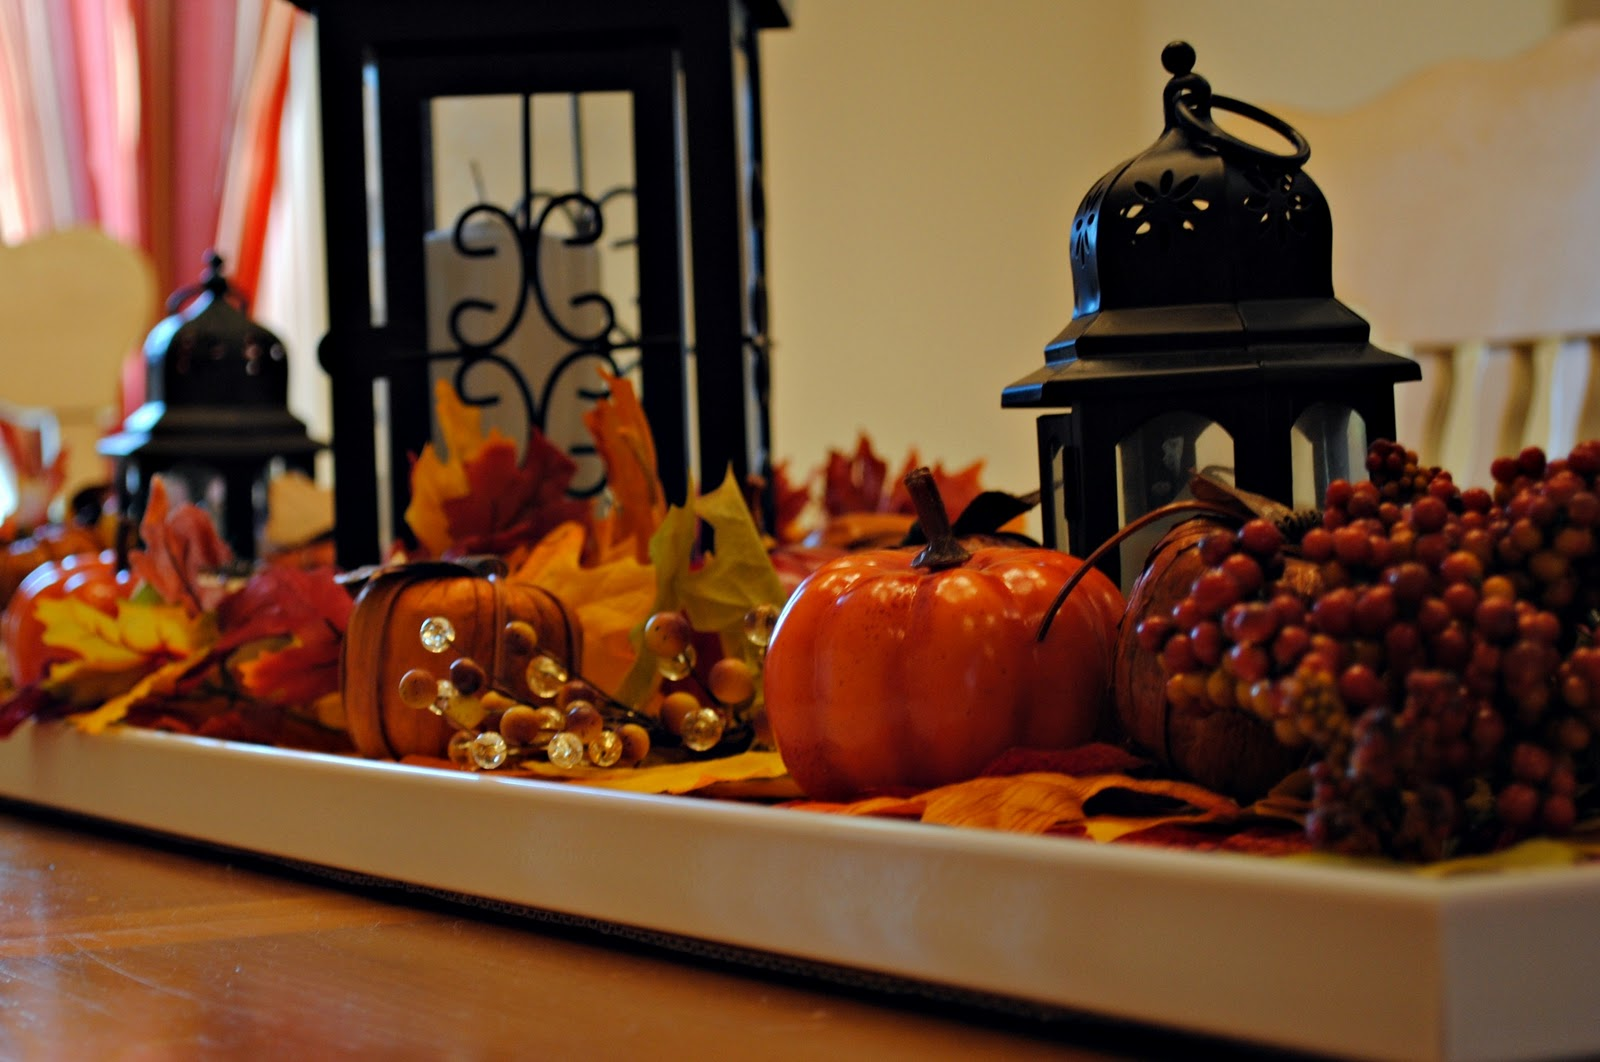 Dining table furniture fall centerpiece